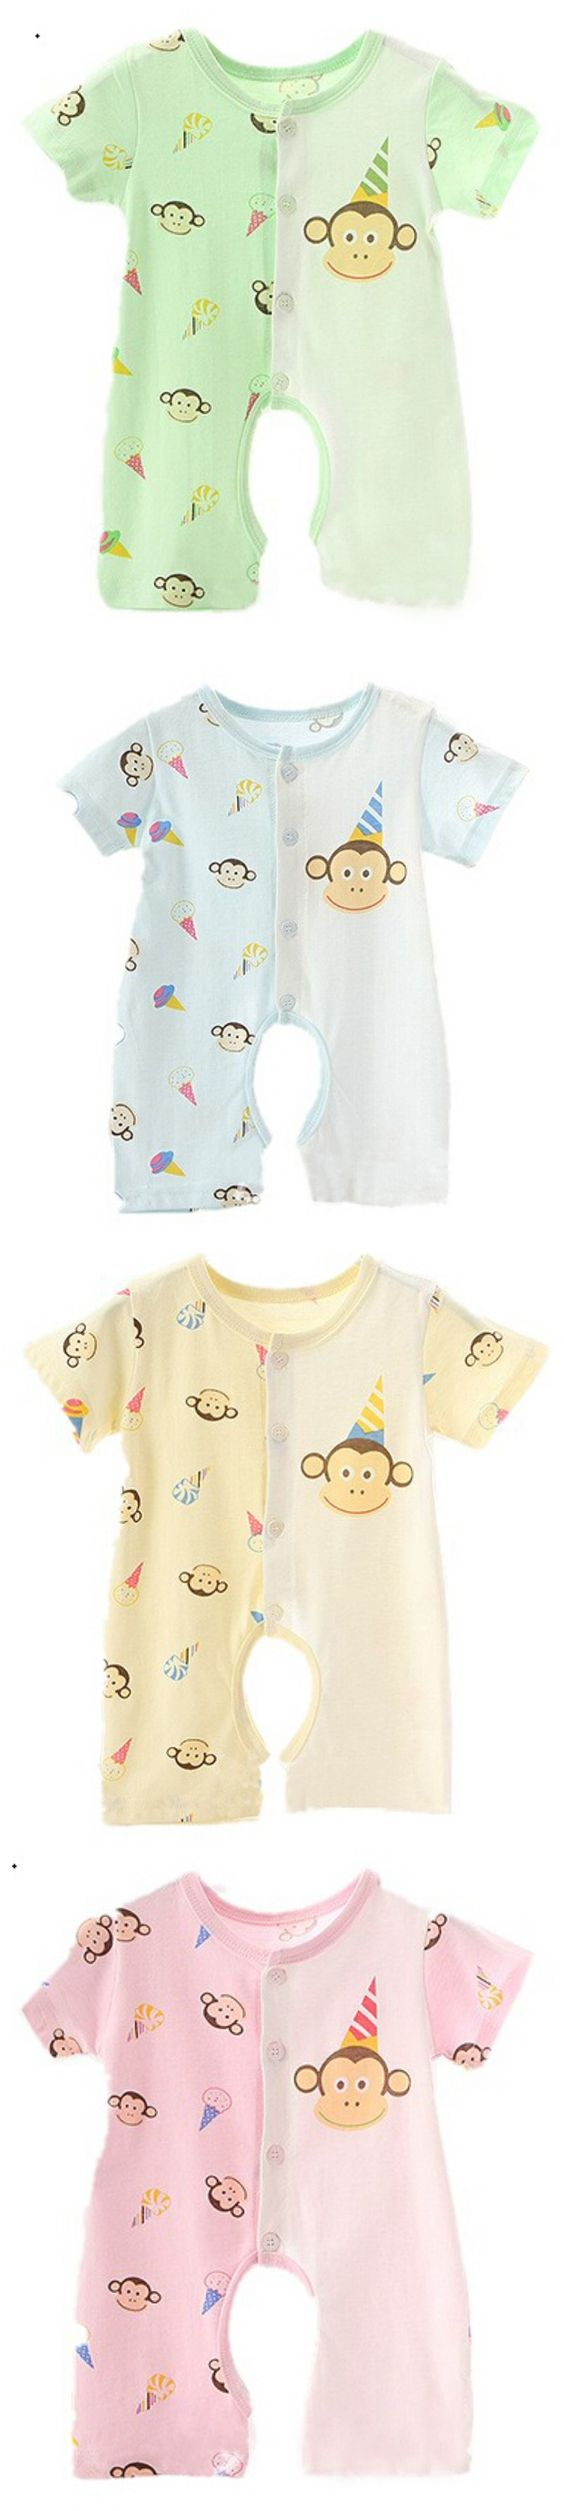 0-3 Yrs High Quality Cotton Baby Romper Medium Long Sleeve Baby A Grade Cloth JumpSuit Toddler O Collar Climbing Suit